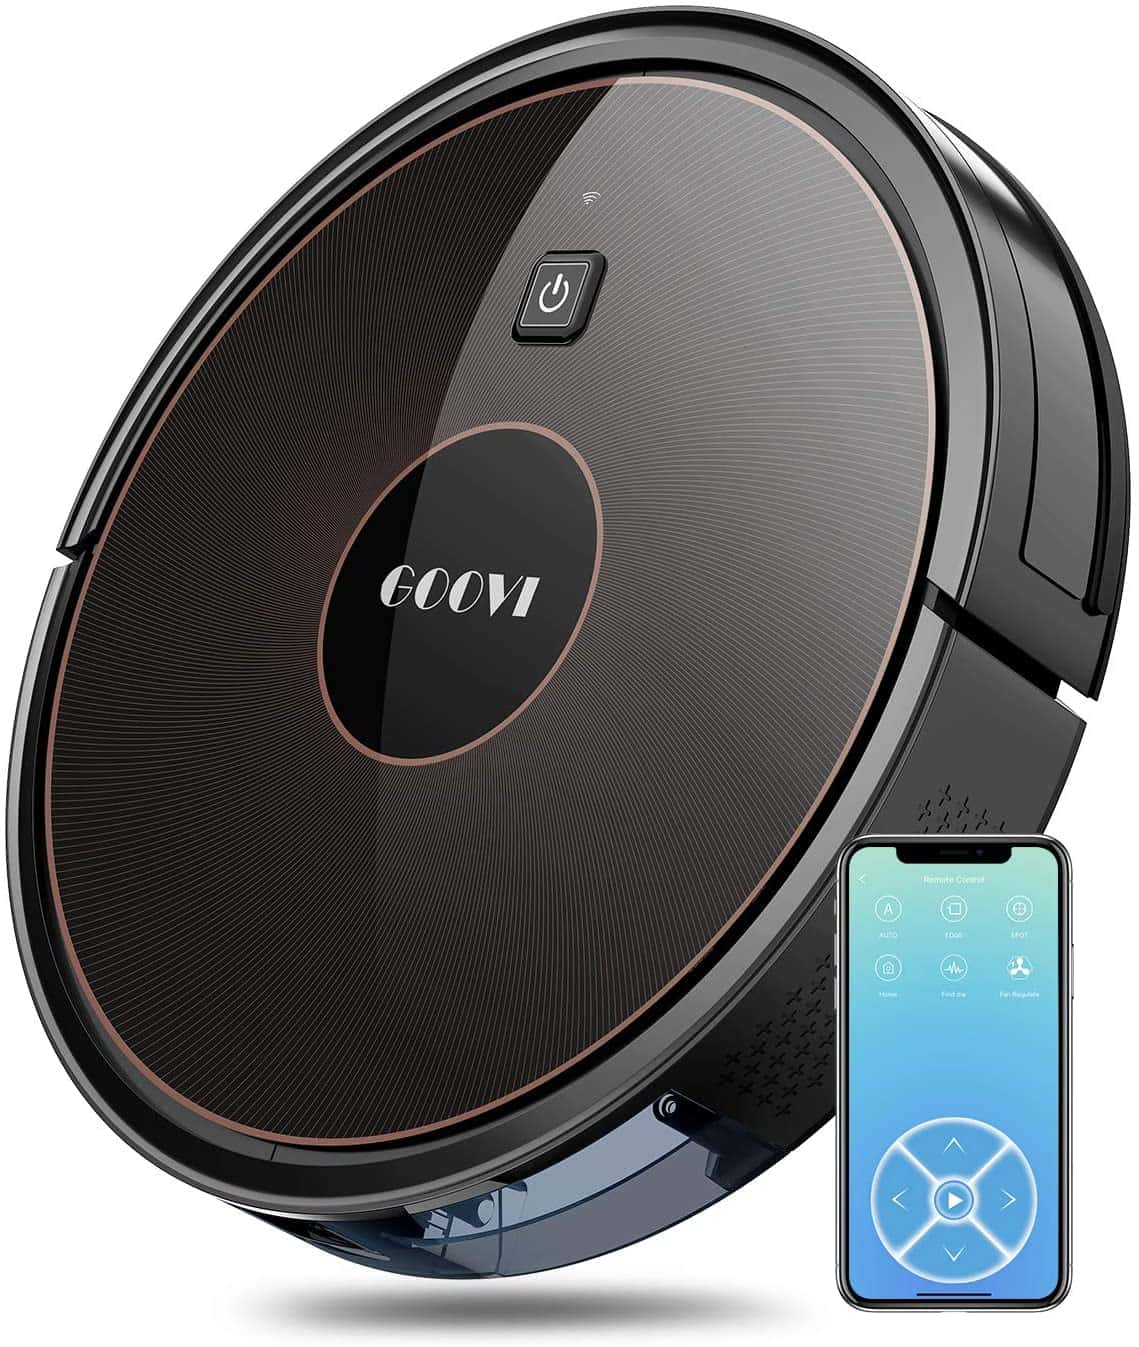 GOOVI Robot Vacuum - Amazon